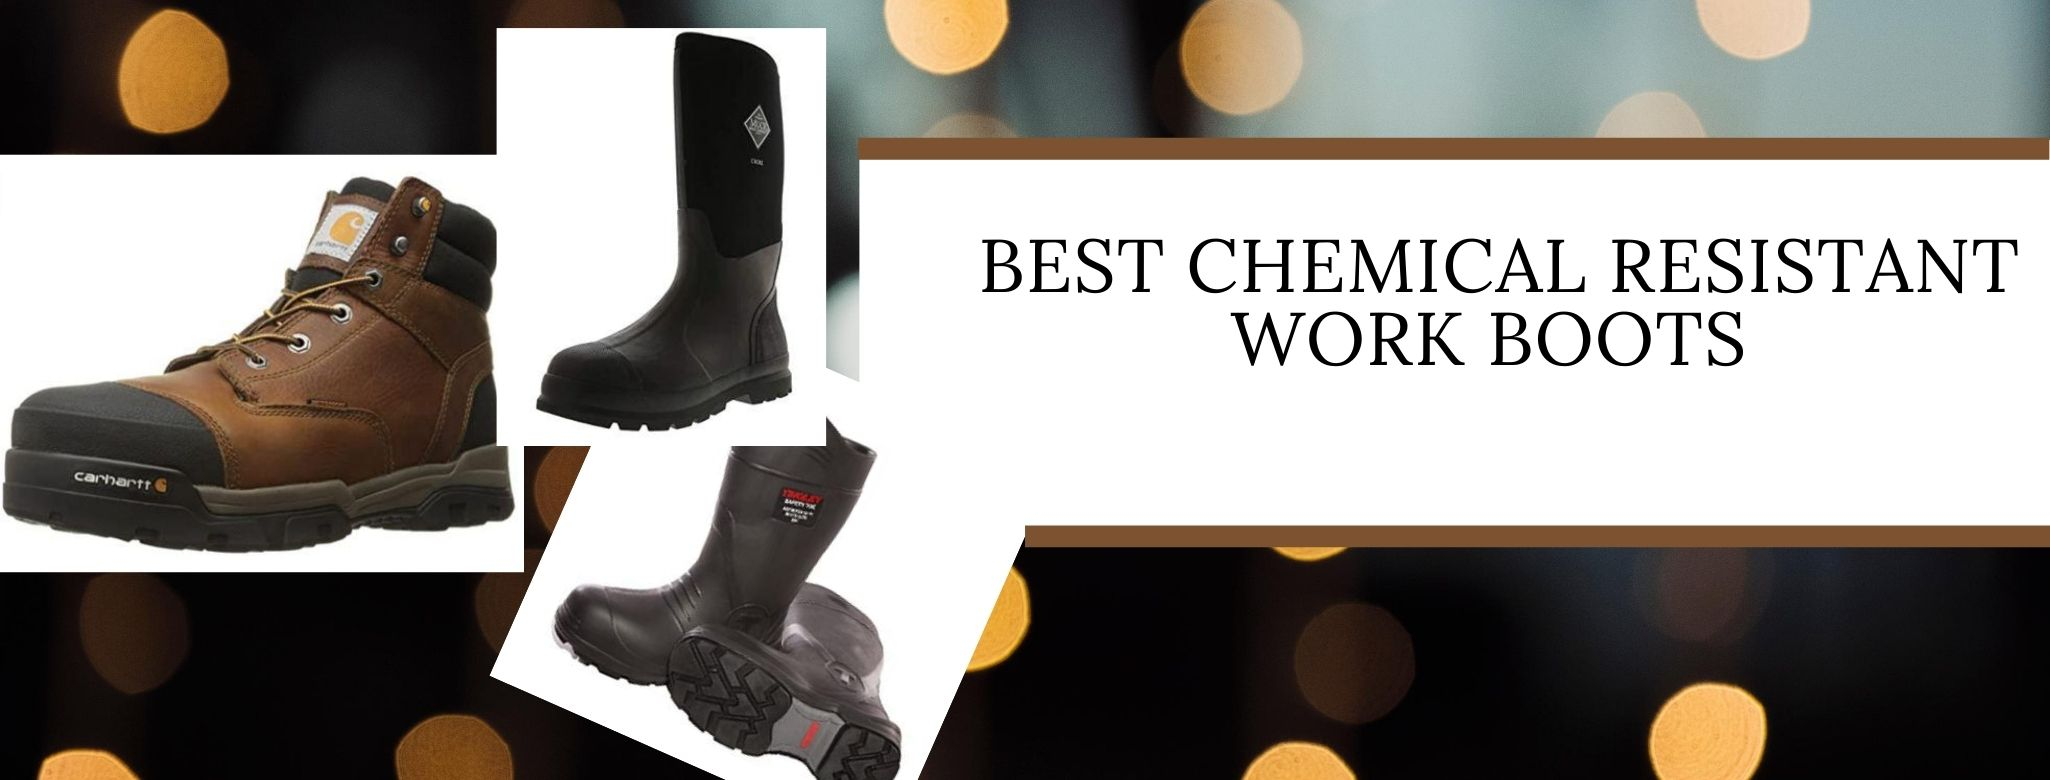 Best work boots to resist chemicals